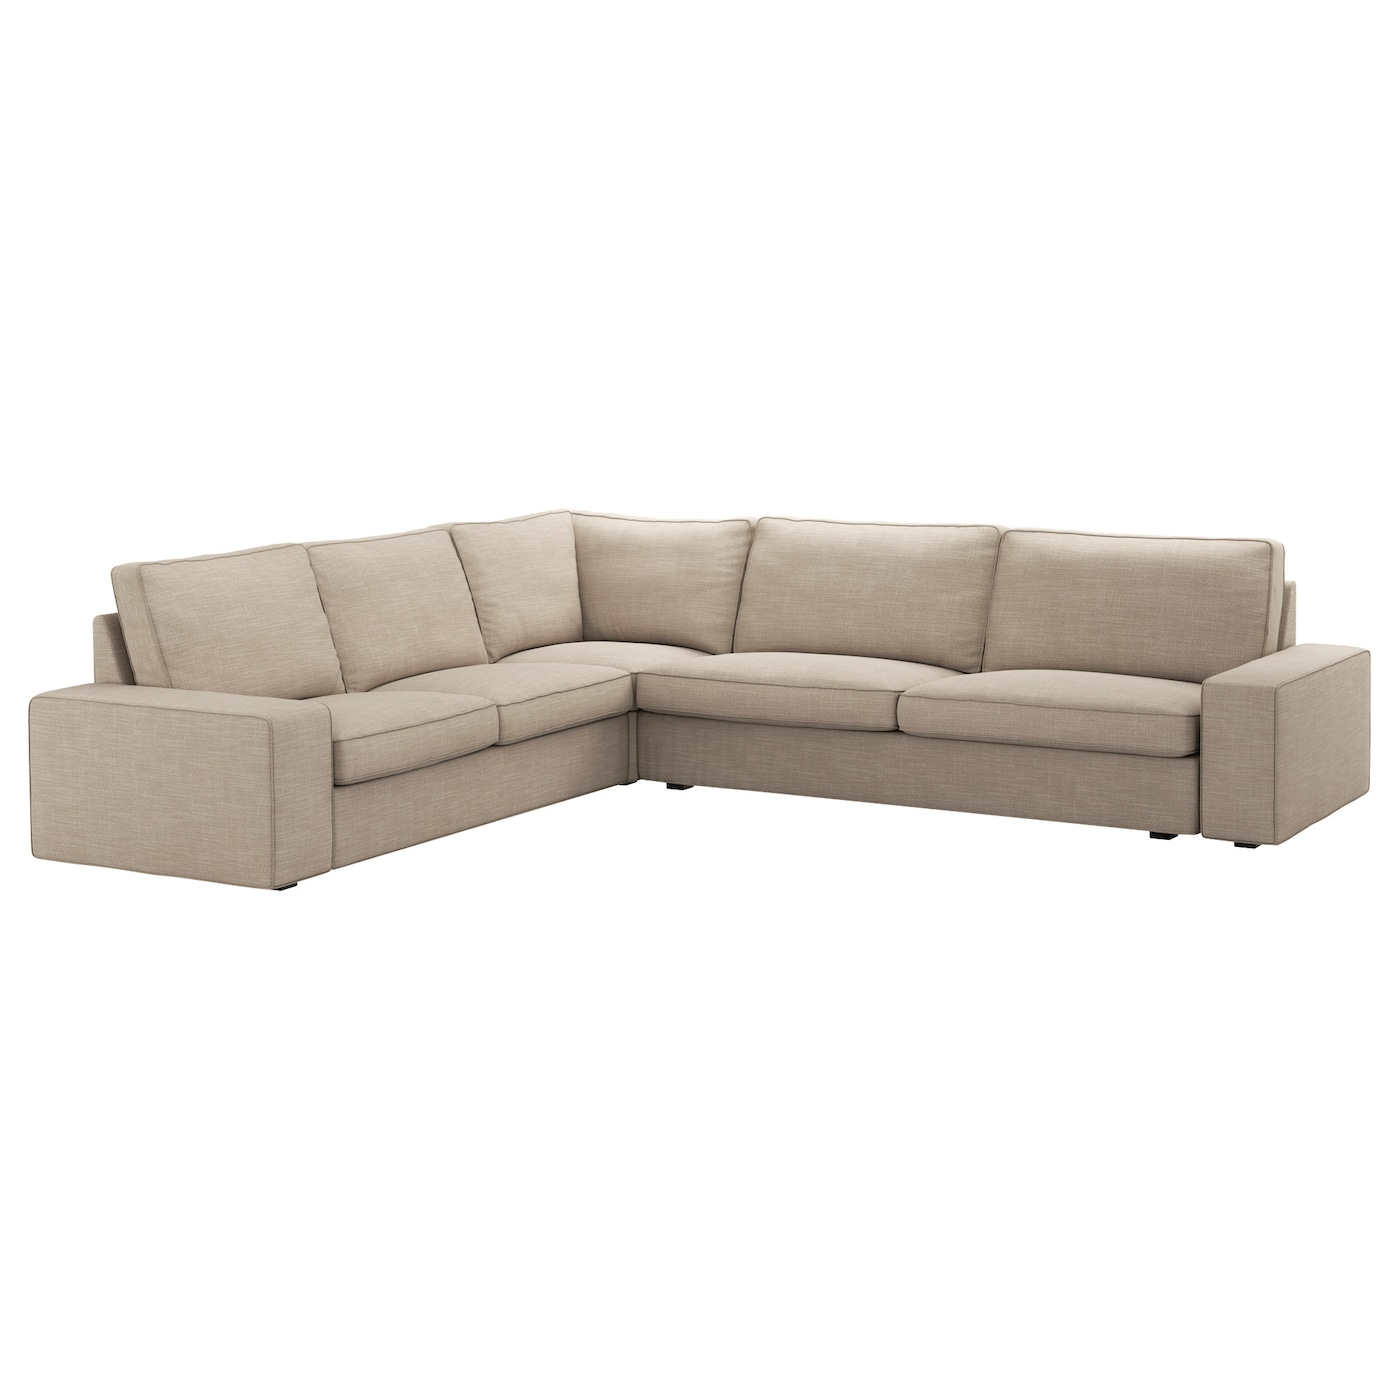 Kivik corner sofa 2 3 3 2 hillared beige ikea for Kivik chaise ikea